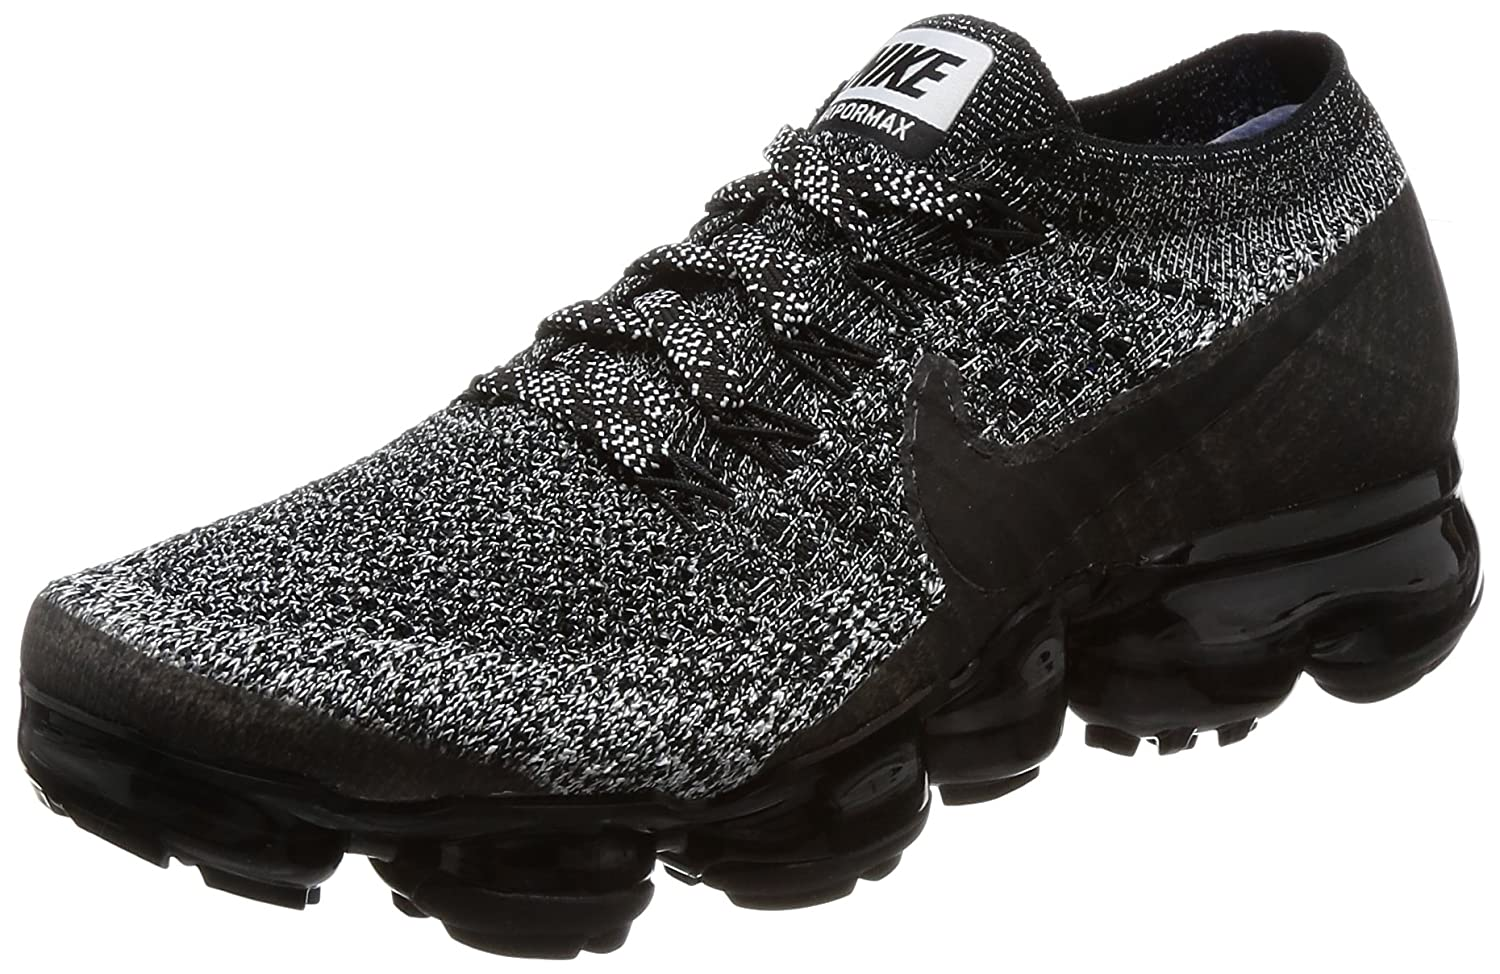 quality design adff5 a4dba Nike Womens Air Vapormax Flyknit Running Trainers 849557 Sneakers Shoes